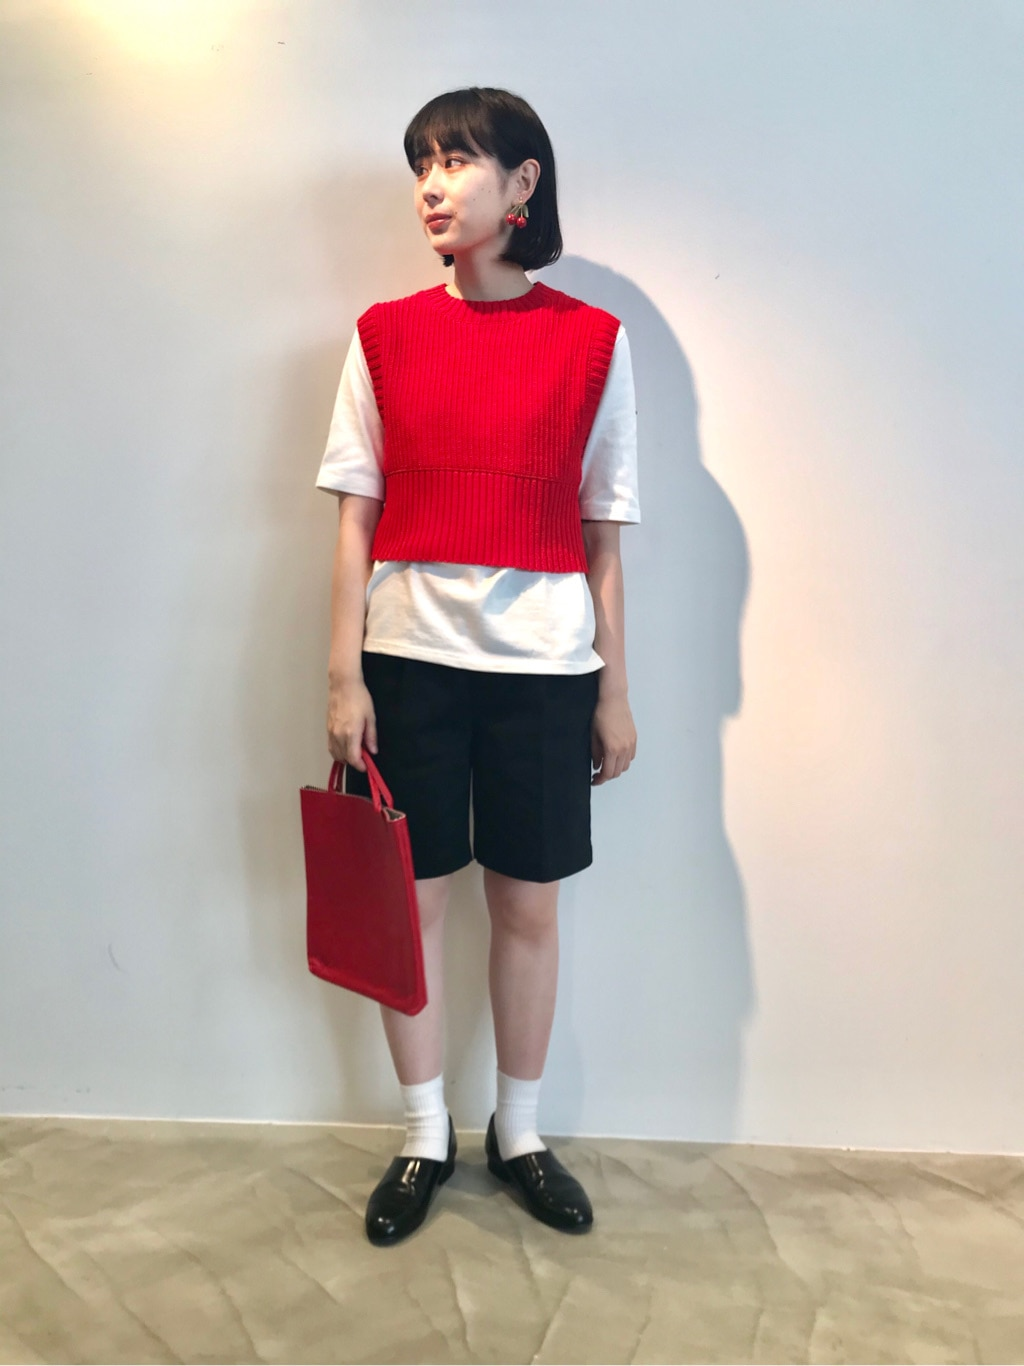 Dot and Stripes CHILD WOMAN ラフォーレ原宿 身長:158cm 2020.08.13